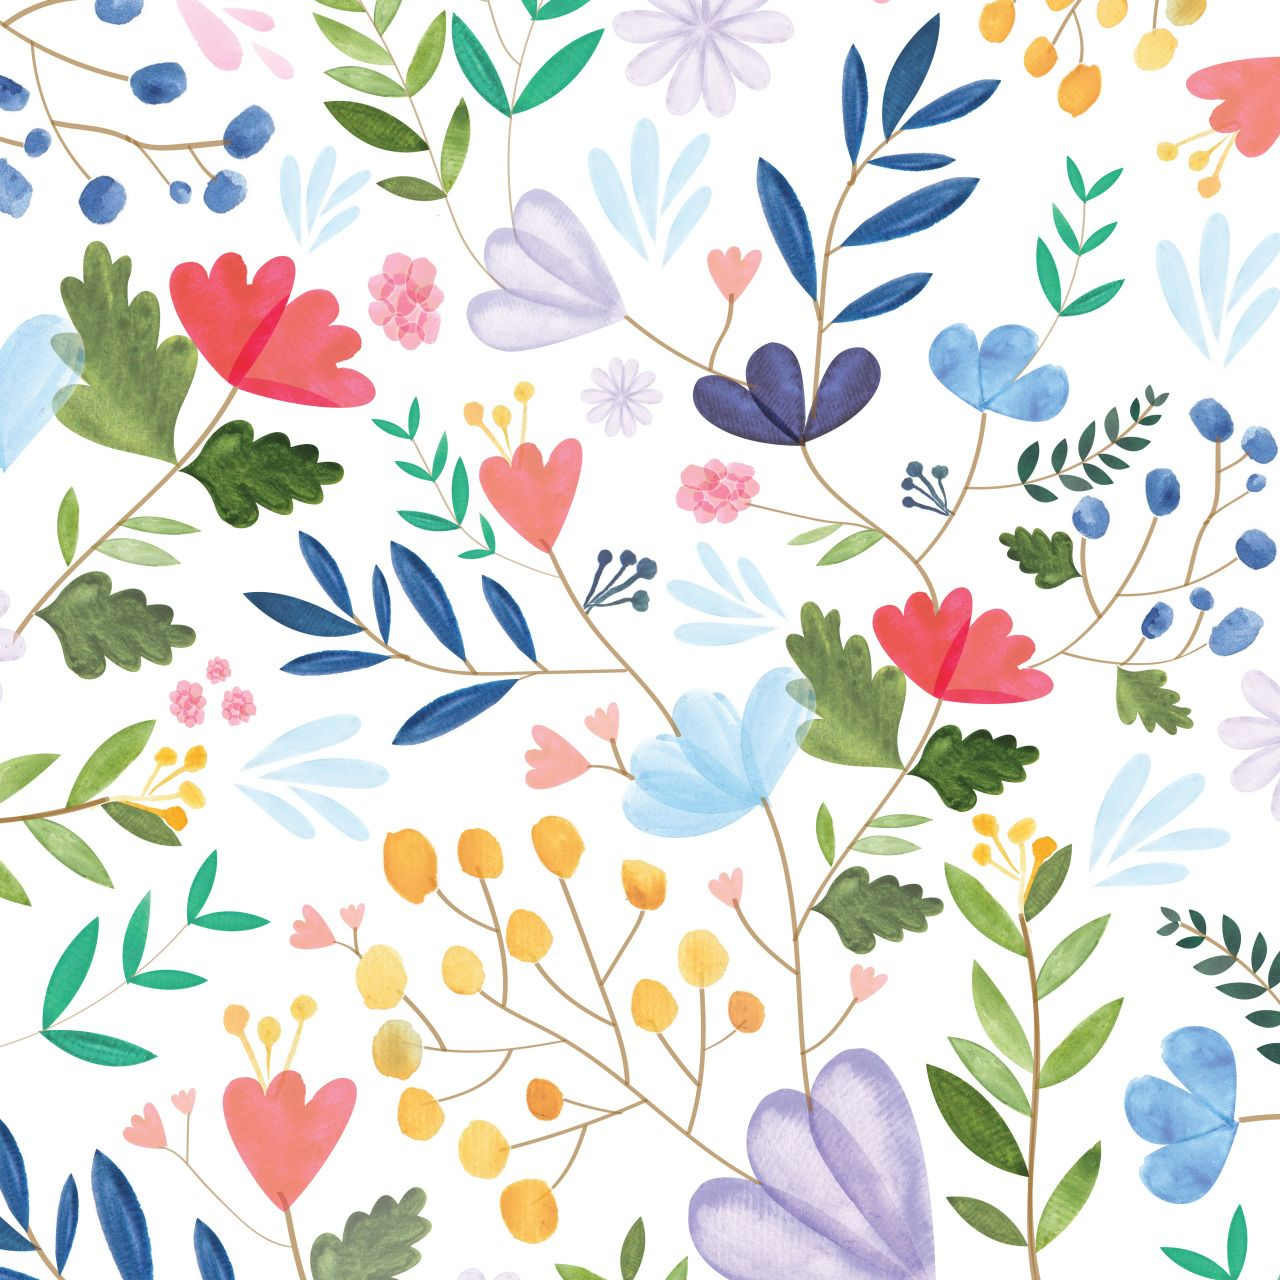 Computer Wallpaper Floral: Looks Pretty Good As A Tiled